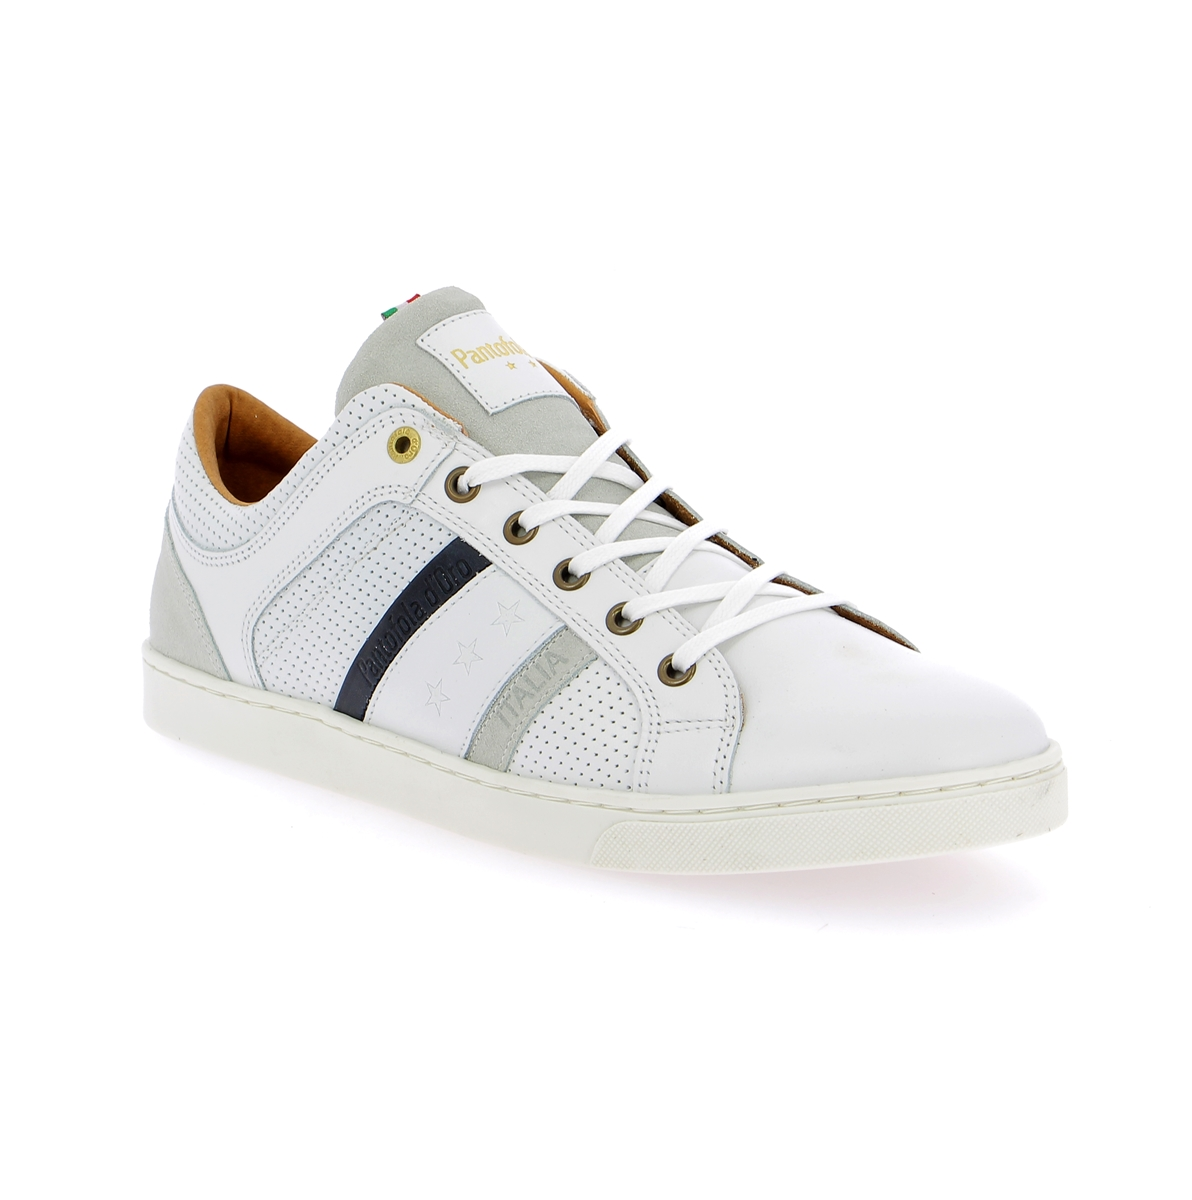 Pantofola D'oro Sneakers wit